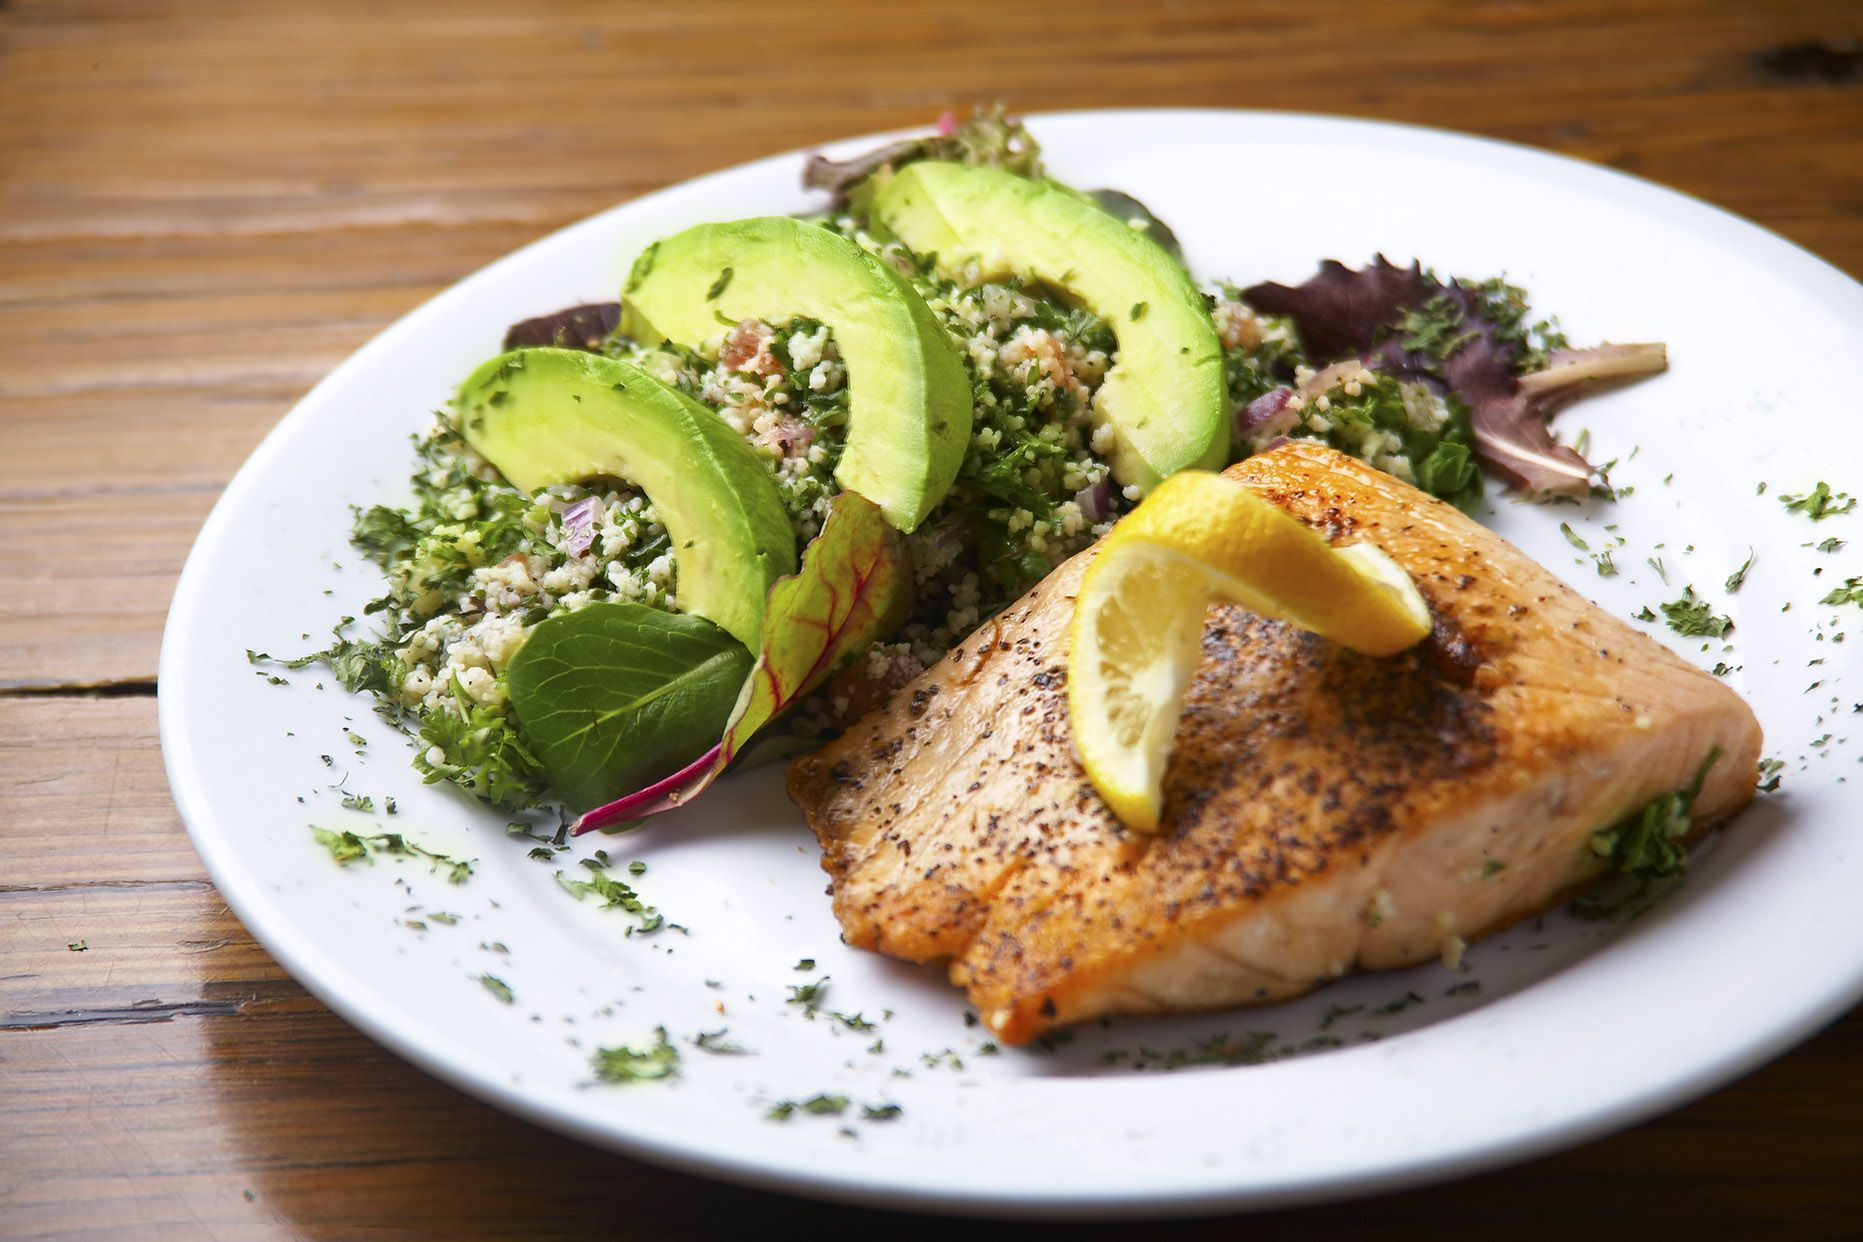 Eat Good Feel Good With Lemoni Cafe Located At 4600 N E 2nd Ave Miami Fl 33137 Tel 305 571 5080 In The Miami Design District Http Lemon Eat Cafe Food